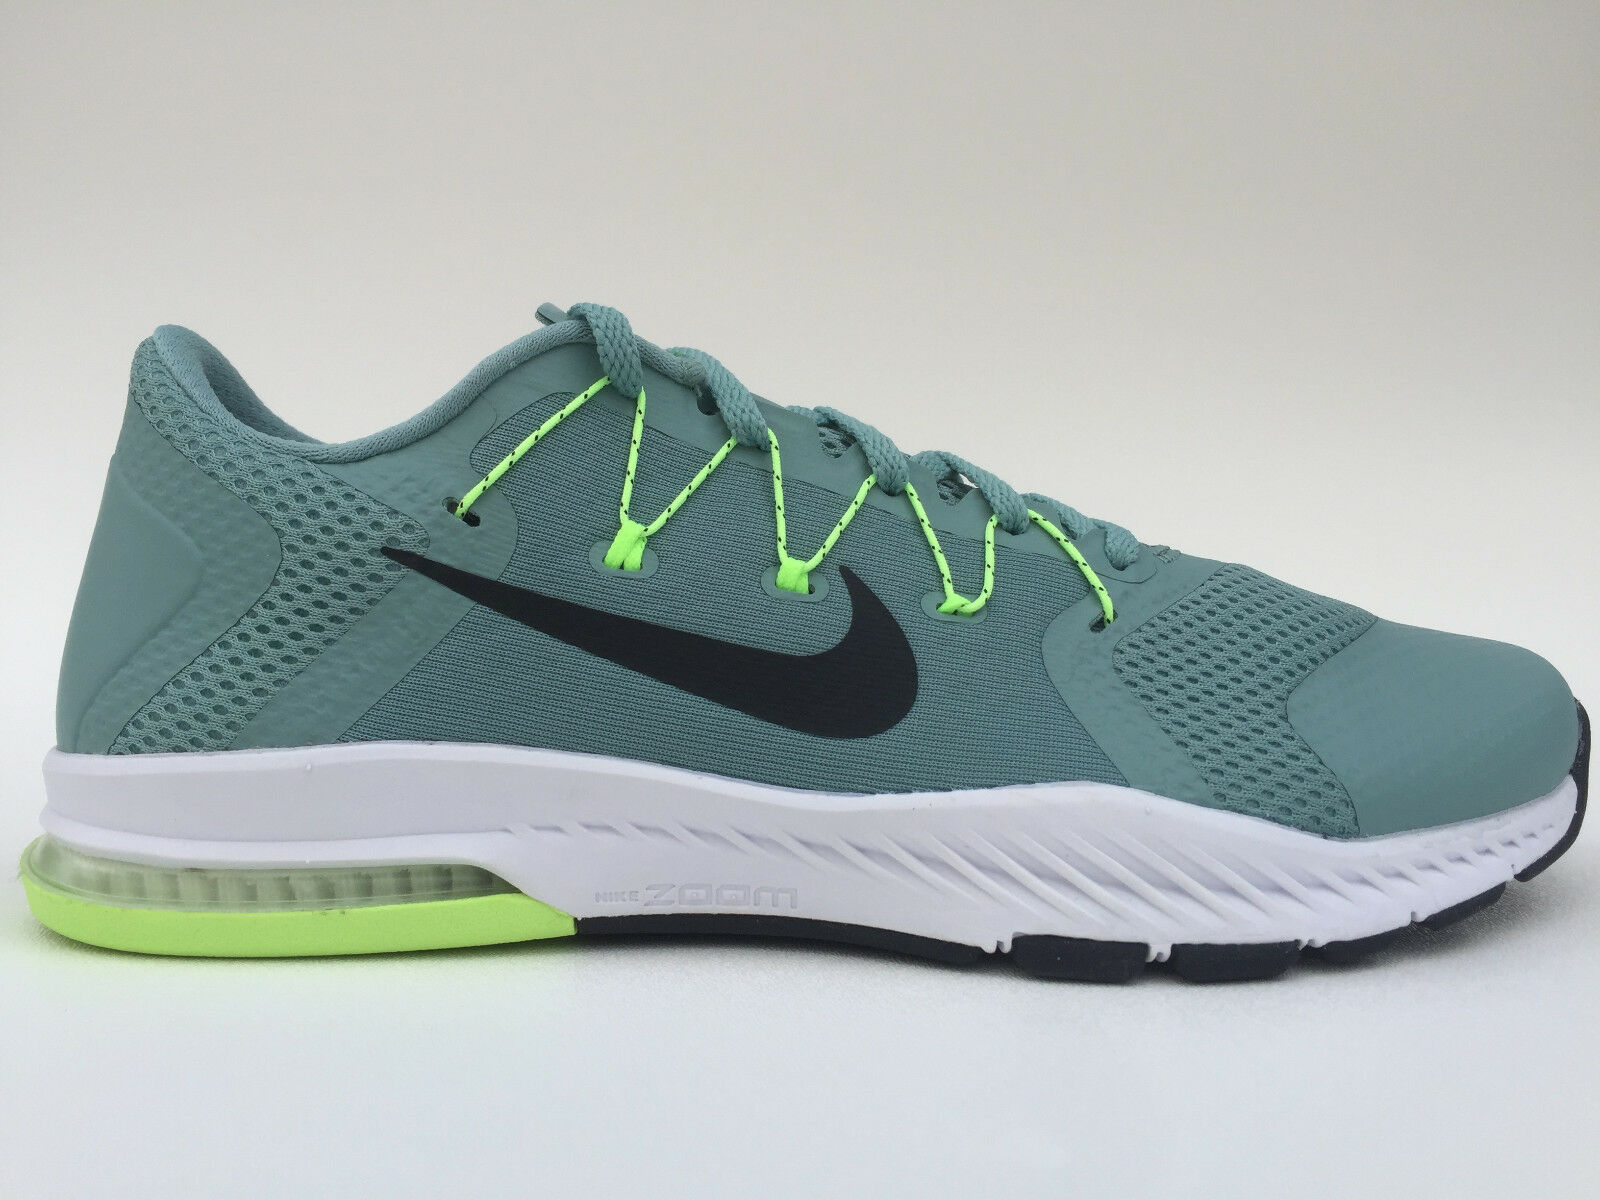 reputable site 6b9b9 1093e Men s NIKE NIKE NIKE Zoom Train Complete TRAINING fonctionnement chaussures  Ghost vert (882119 004)